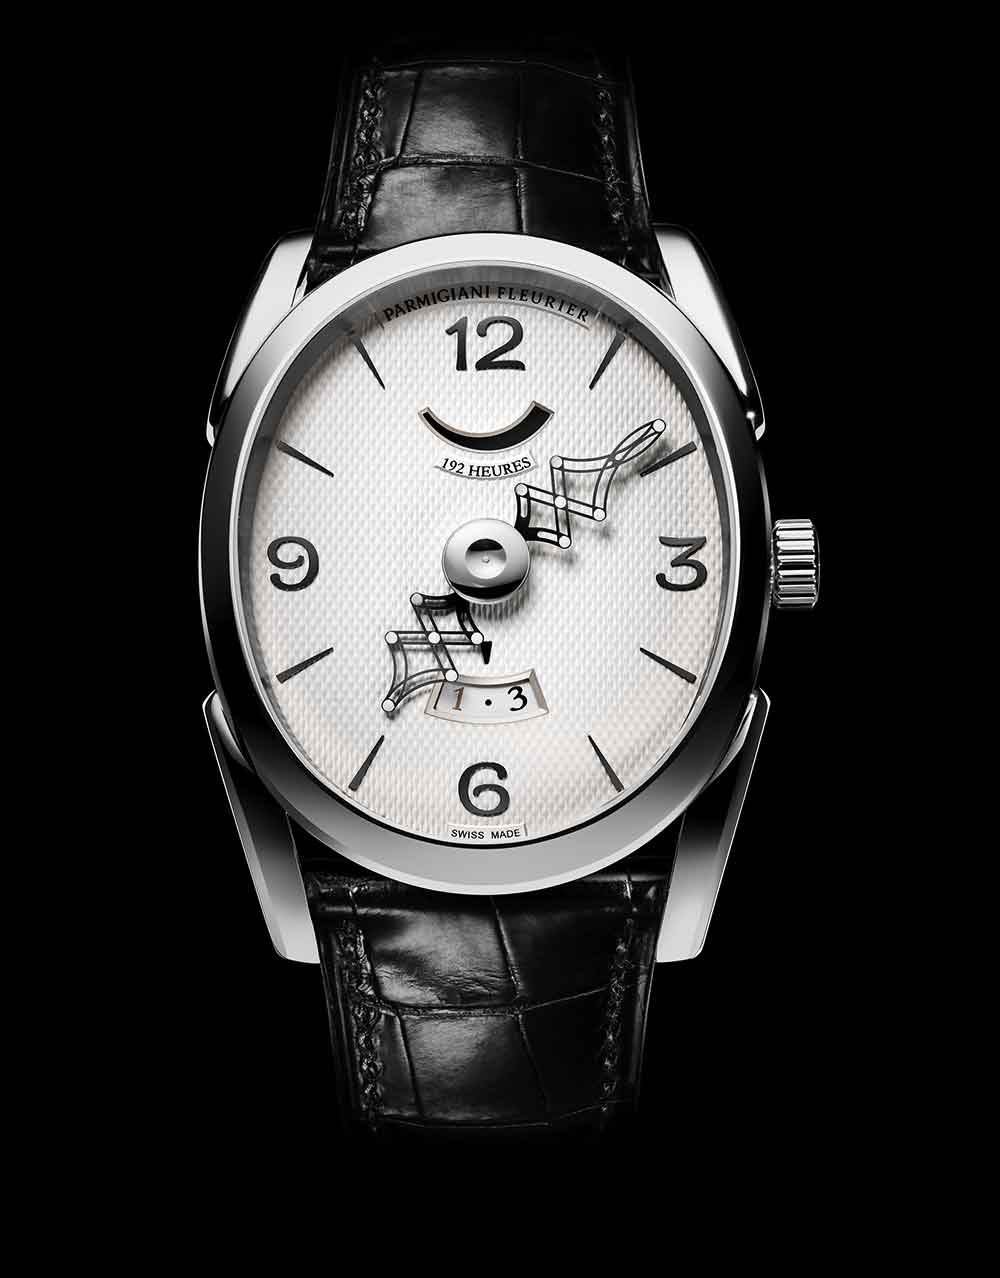 Parmigiani Fleurier Ovale Pantographe Edition Or, reference PFH791-1200100-HA1441